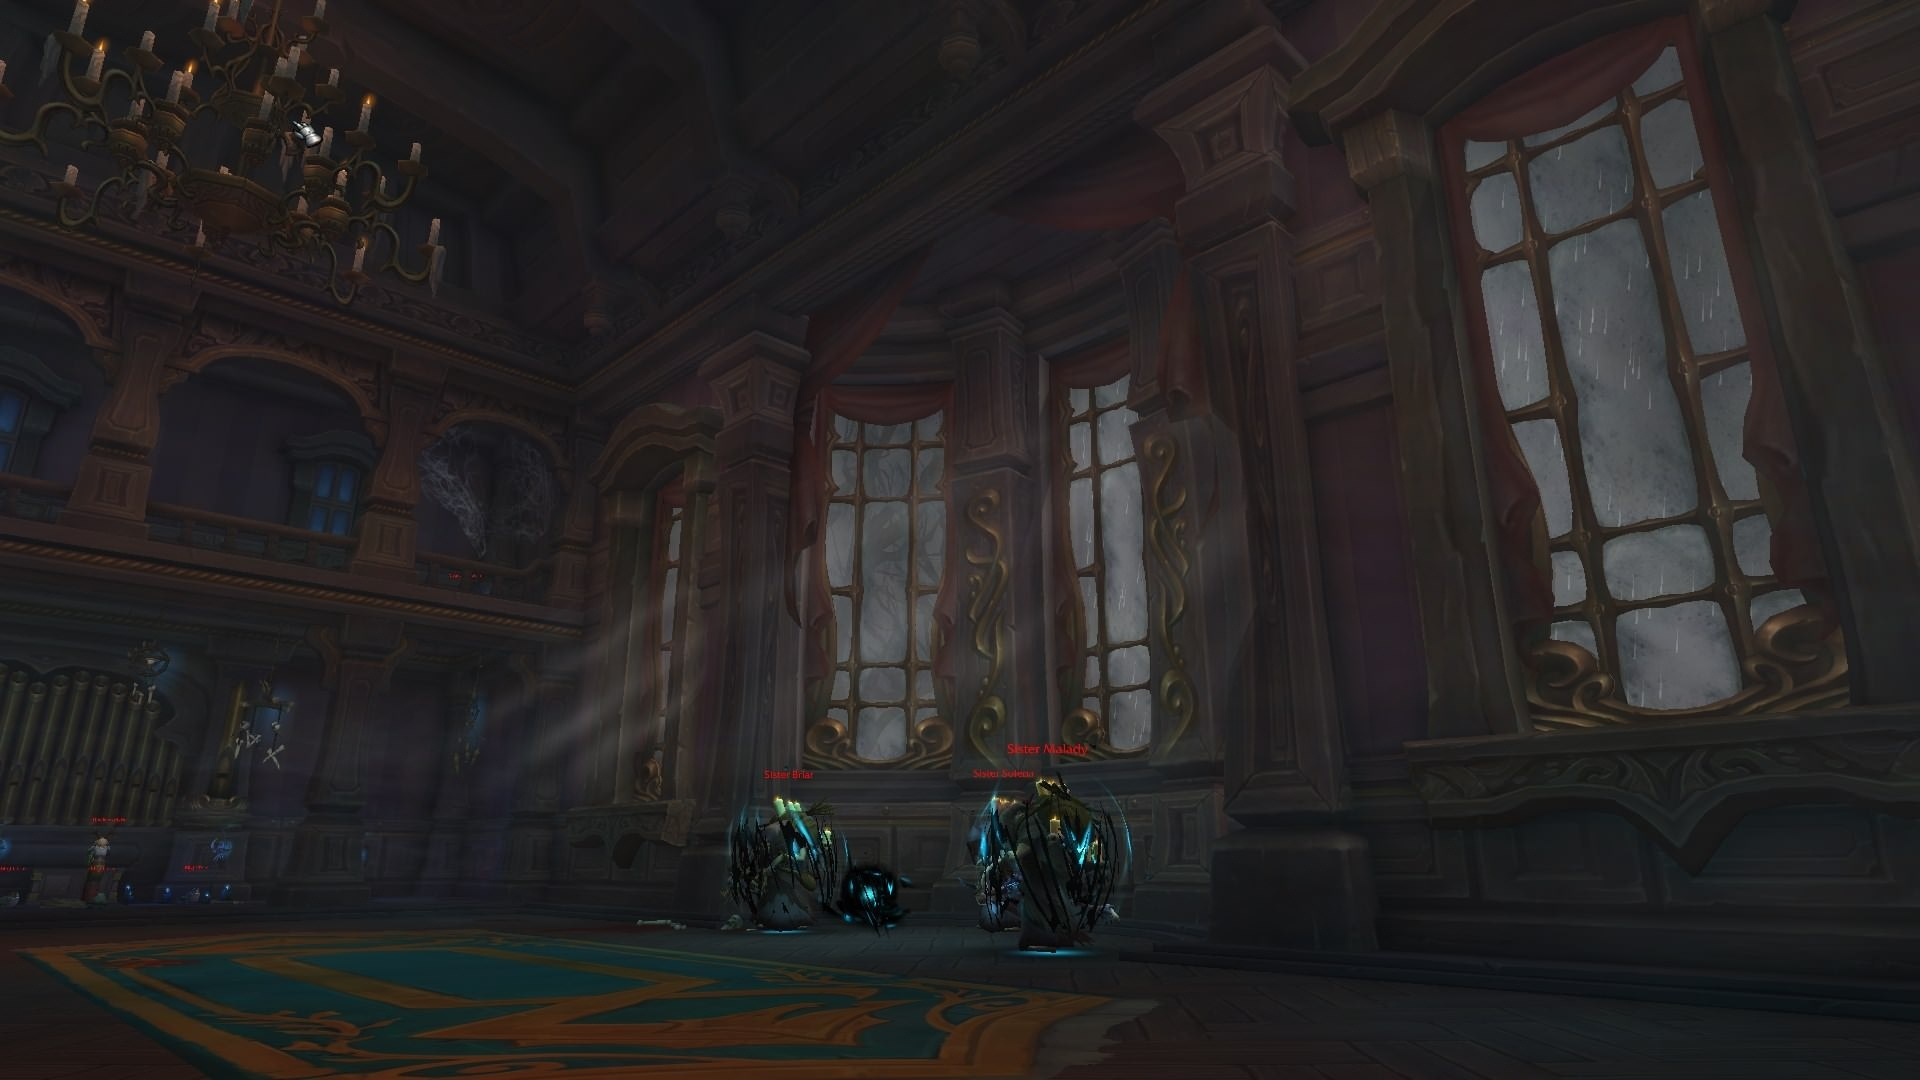 Jdotb BFA Q&A #16 - Top Weakauras for Mythic+, WoW Esports - Wowhead